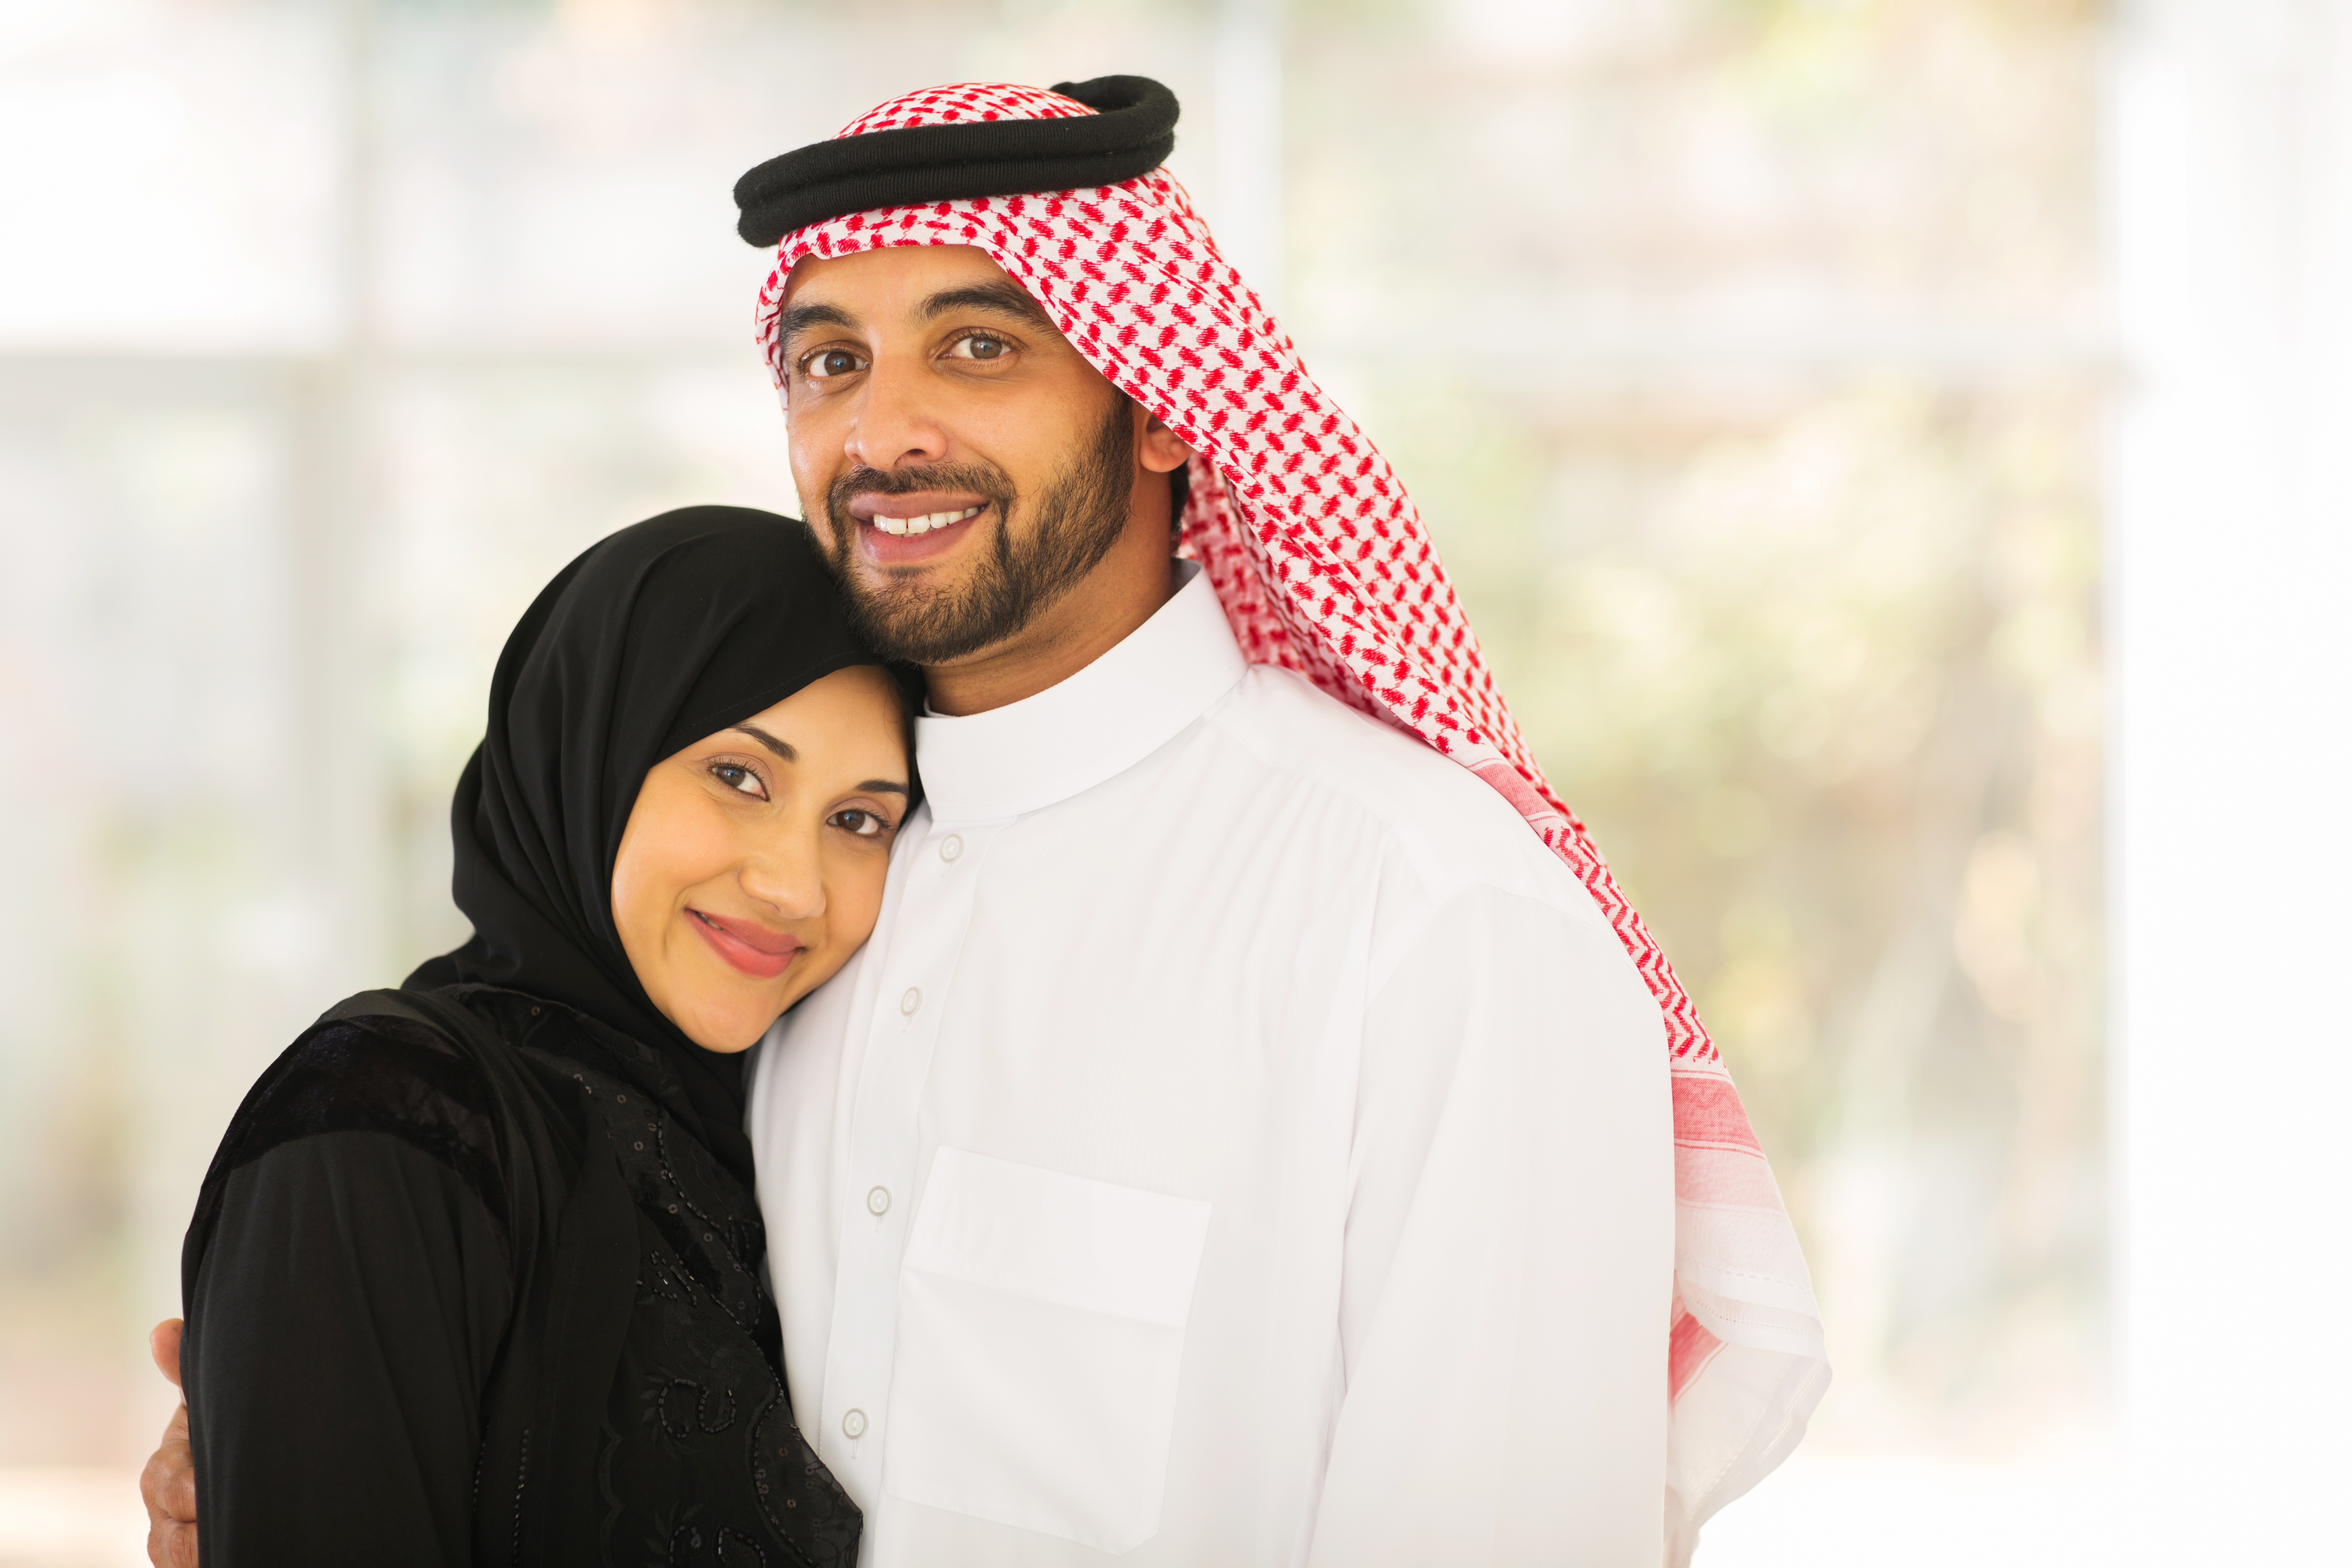 killduff muslim singles Muslim singles 16,564 likes 14 talking about this muslim - singles is a site devoted to helping single muslims meet the perfect partner for.